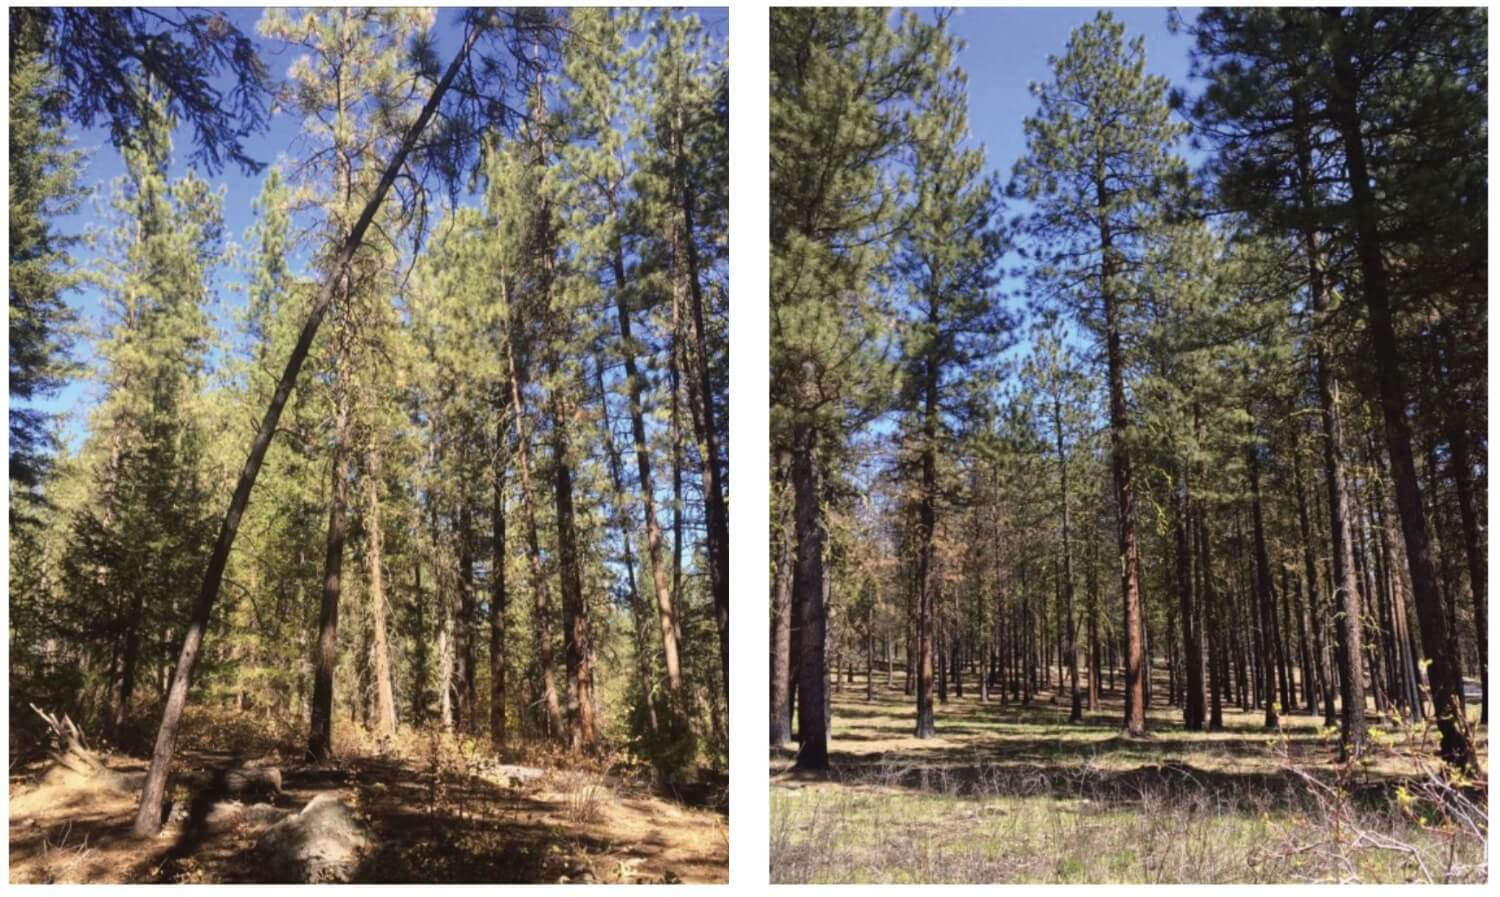 Two photos of forests, side by side. The left has more trees than the right.